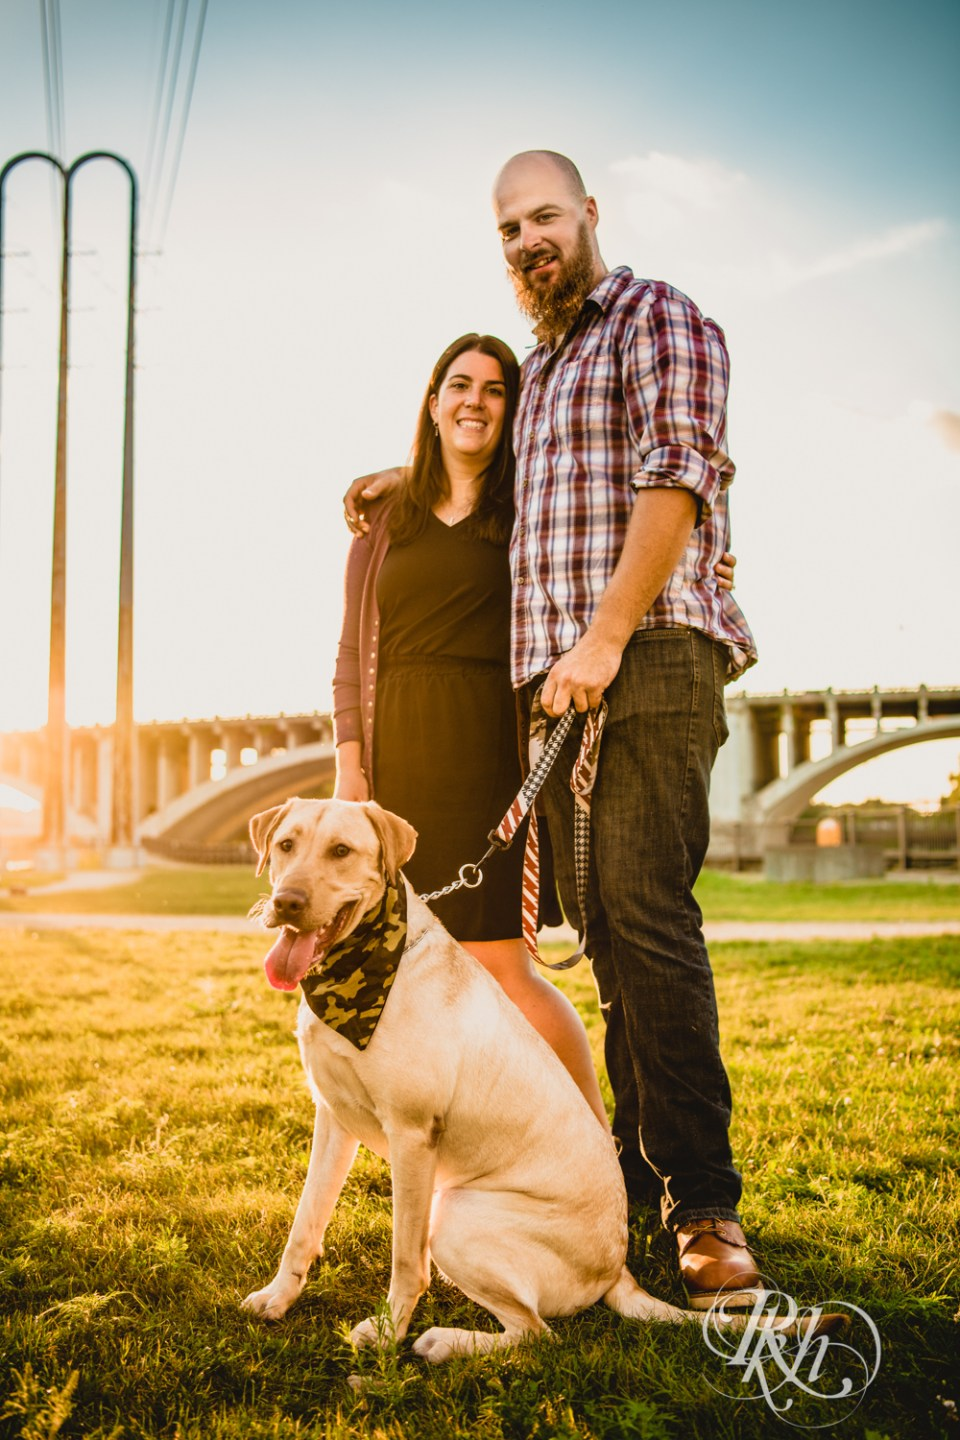 Puppy engagement photography